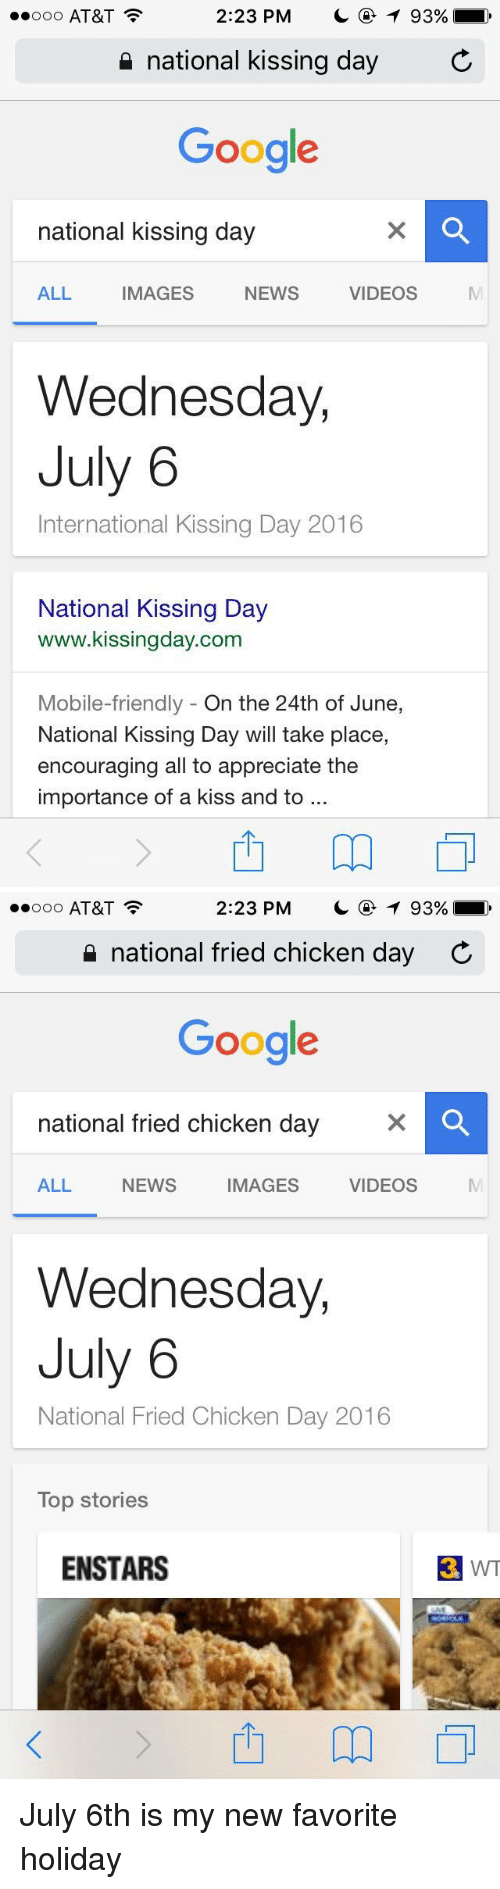 Googłe: 2:23 PM  T 93%,  ooo AT&T  national kissing day  C  Google  national kissing day  ALL  IMAGES  NEWS  VIDEOS  Wednesday,  July 6  International Kissing Day 2016  National Kissing Day  www.kissingday.com  Mobile-friendly On the 24th of June  National Kissing Day will take place,  encouraging all to appreciate the  importance of a kiss and to   2:23 PM  T 93%  ooo AT&T  national fried chicken day C  Google  national fried chicken day  VIDEOS  ALL NEWS  IMAGES  Wednesday,  July 6  National Fried Chicken Day 2016  Top Stories  ENSTARS  3 WT July 6th is my new favorite holiday